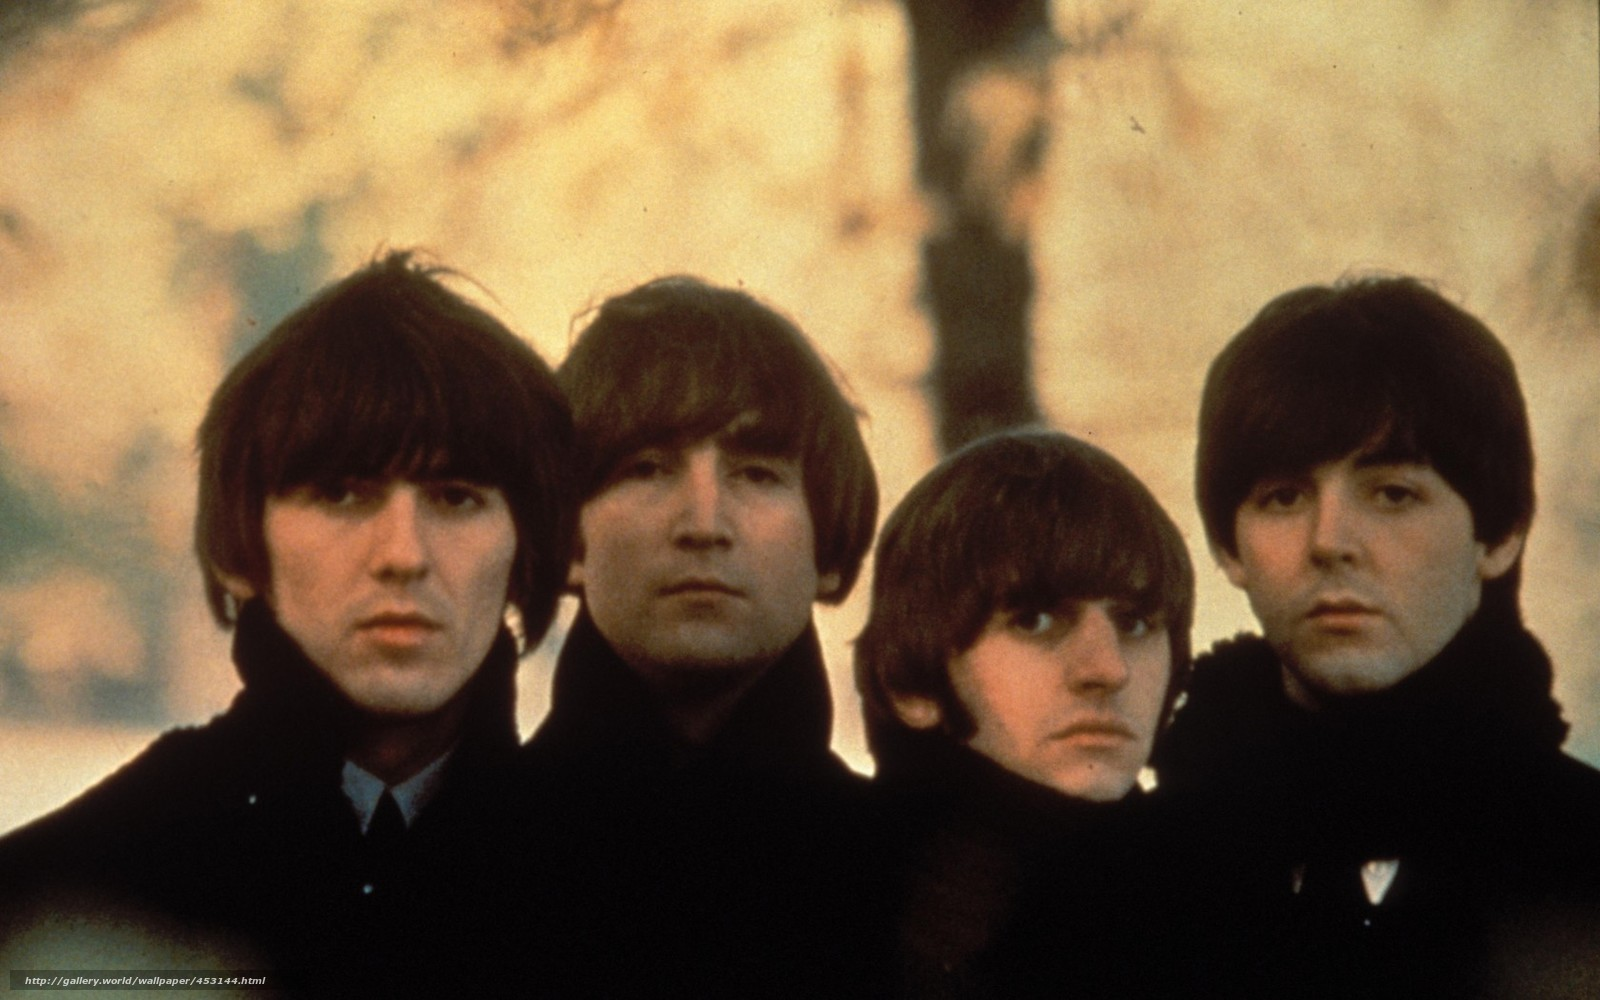 Download Wallpaper The Beatles Group Free Desktop In Resolution 1680x1050 Picture No453144